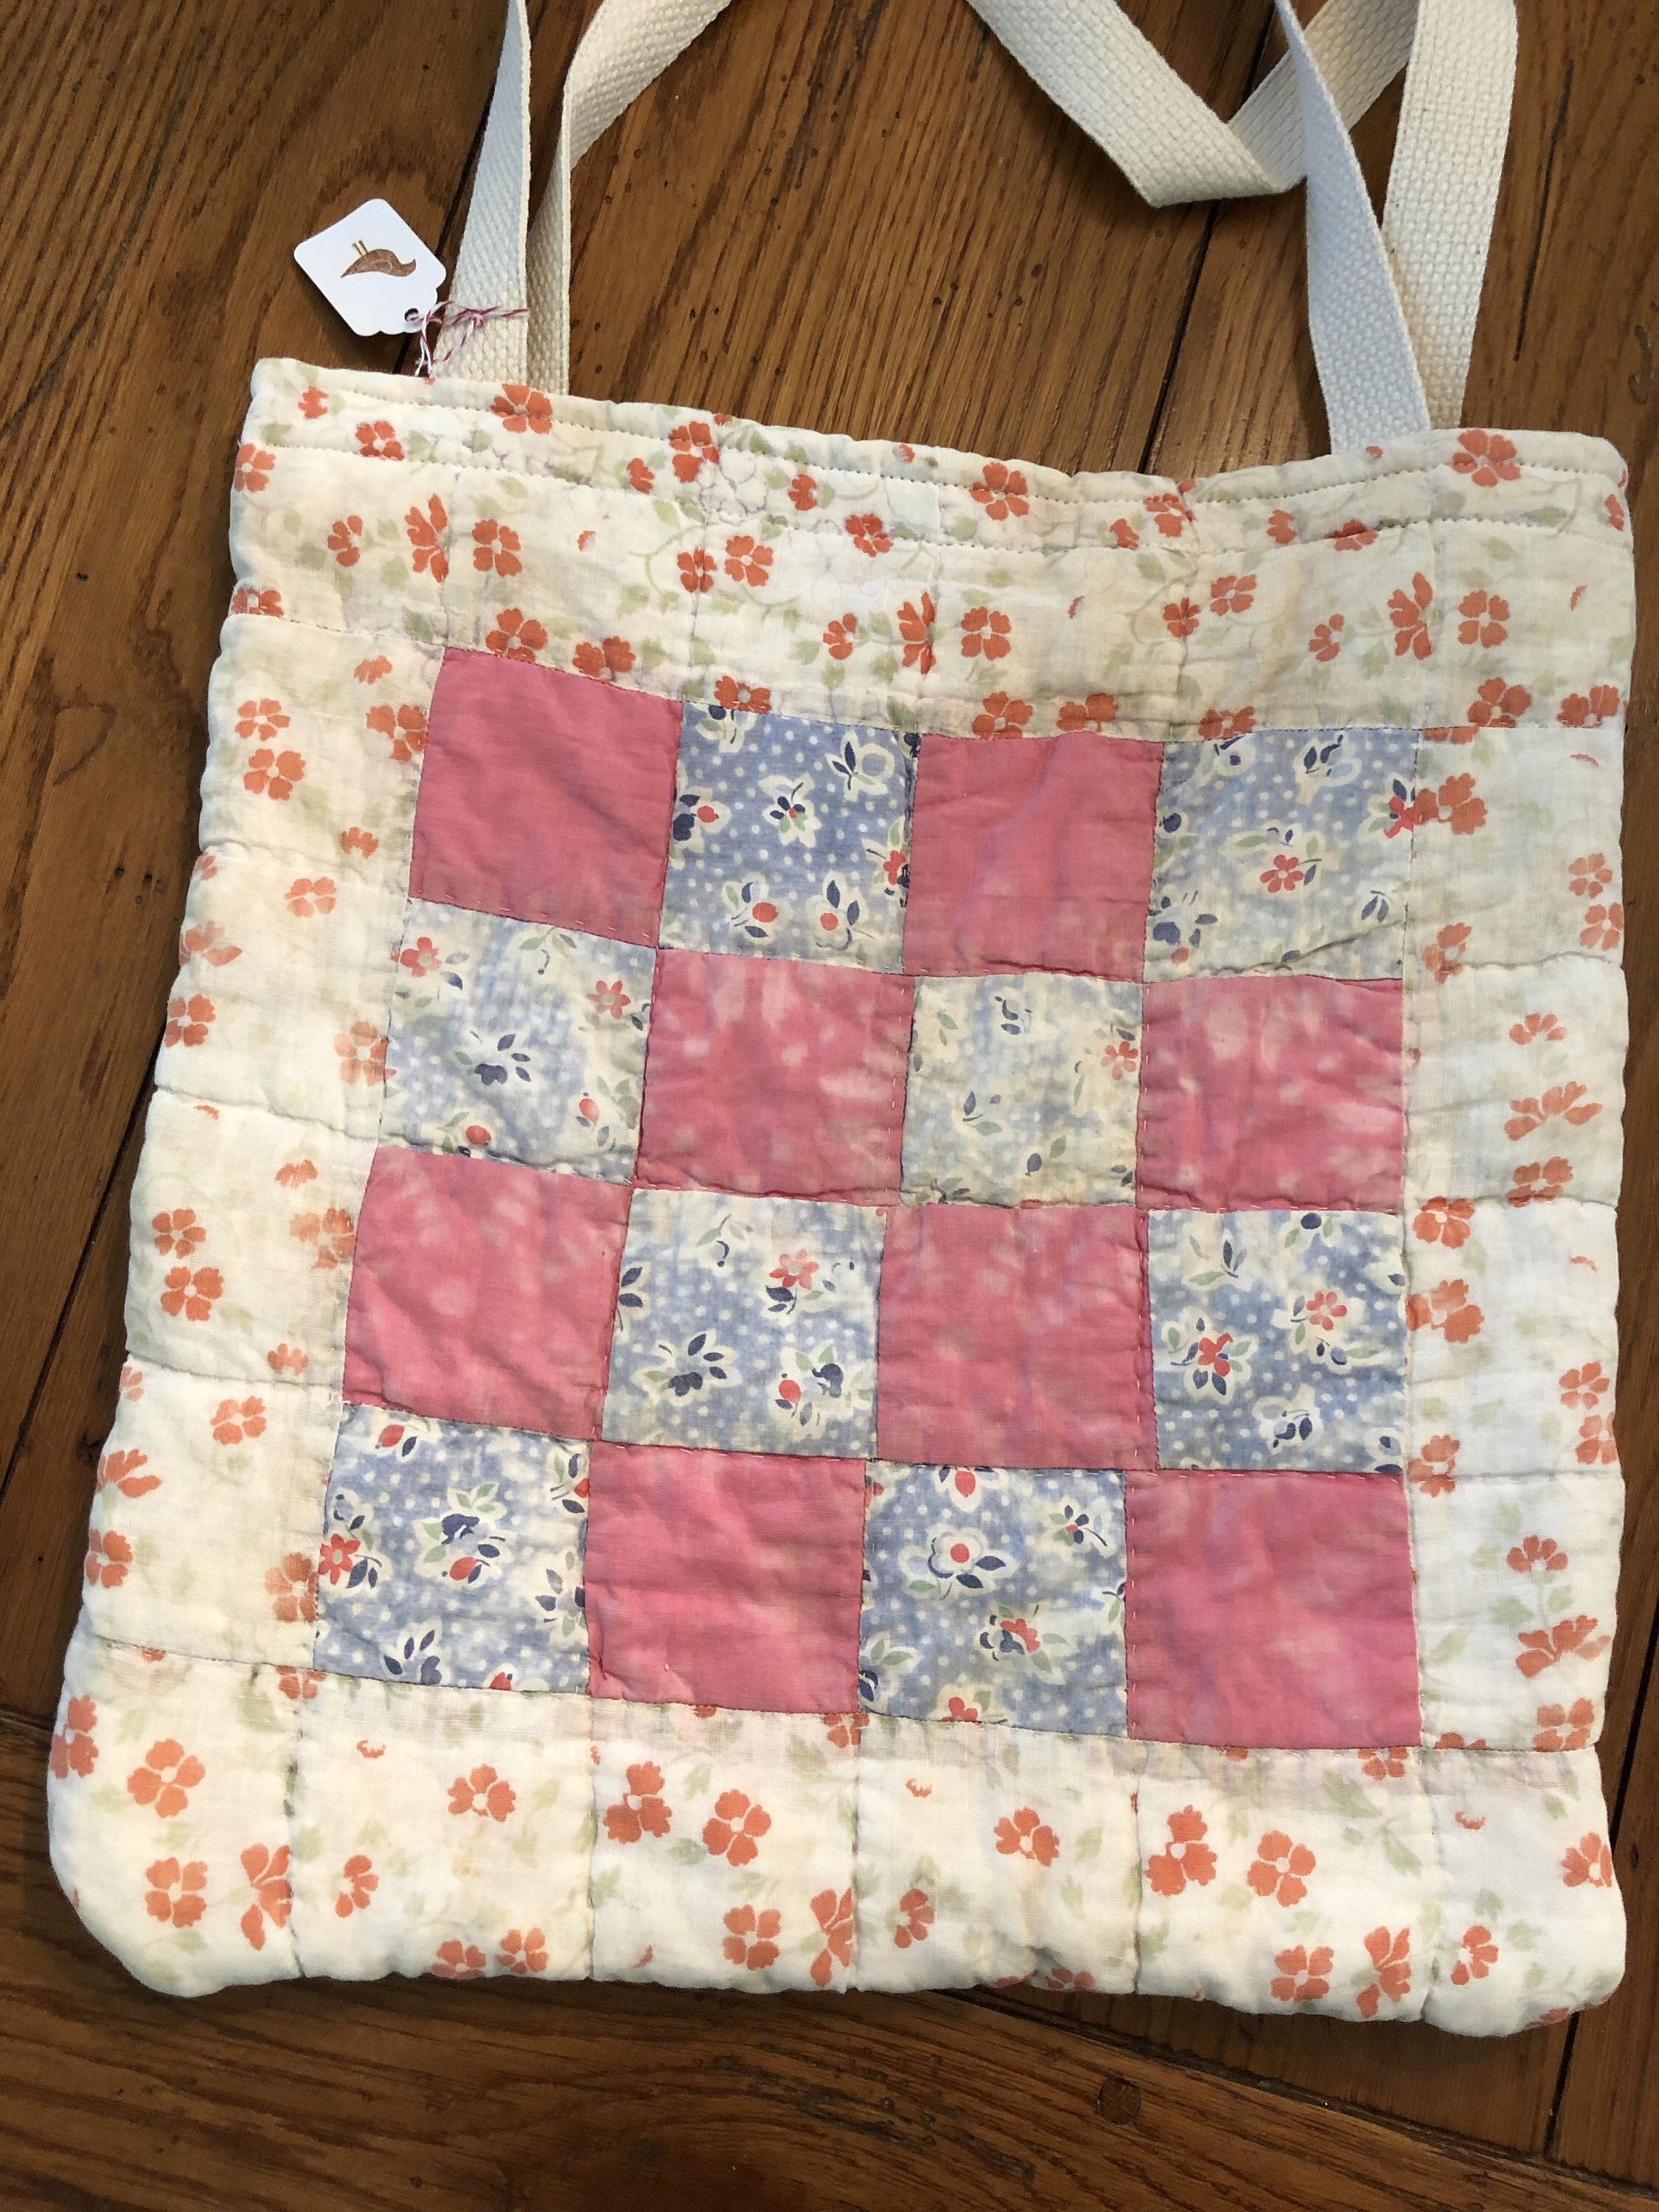 shopping bag Vintage tablecloth vintage tote tote cotton tote shabby chic tote floral bag repurpose vintage tablecloth